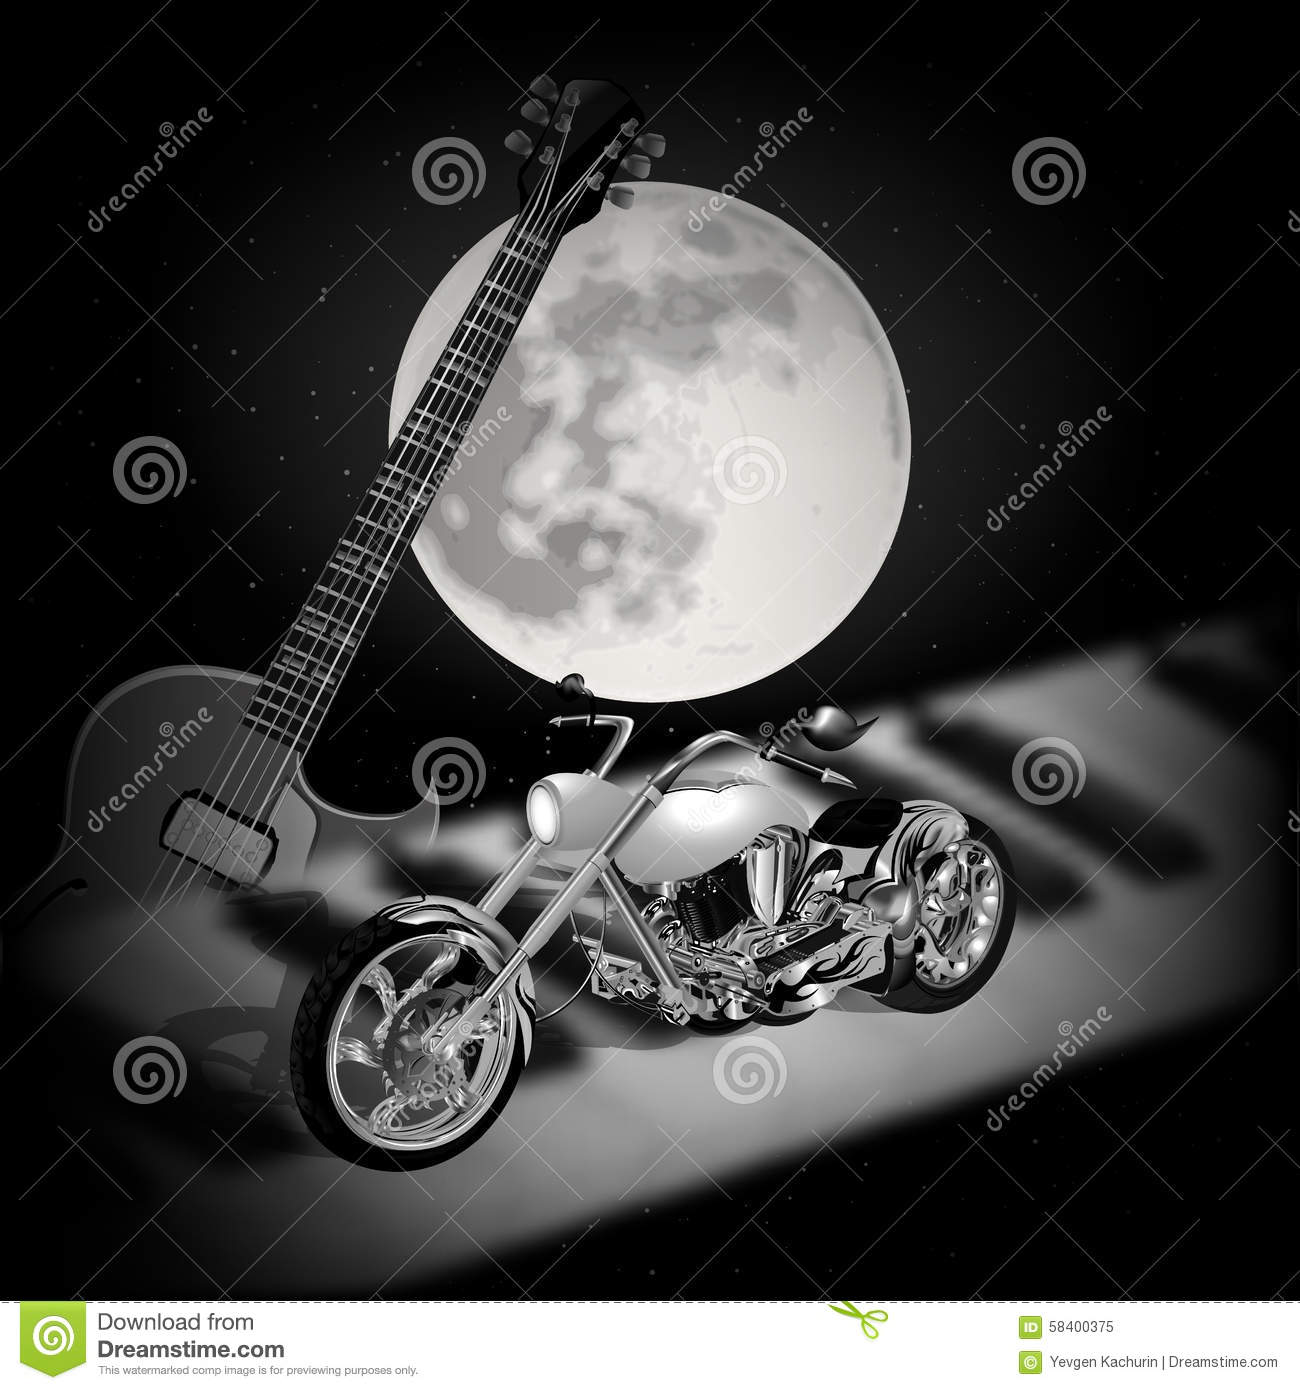 Piano Background Music: Rock Music Background With Moon Stock Vector